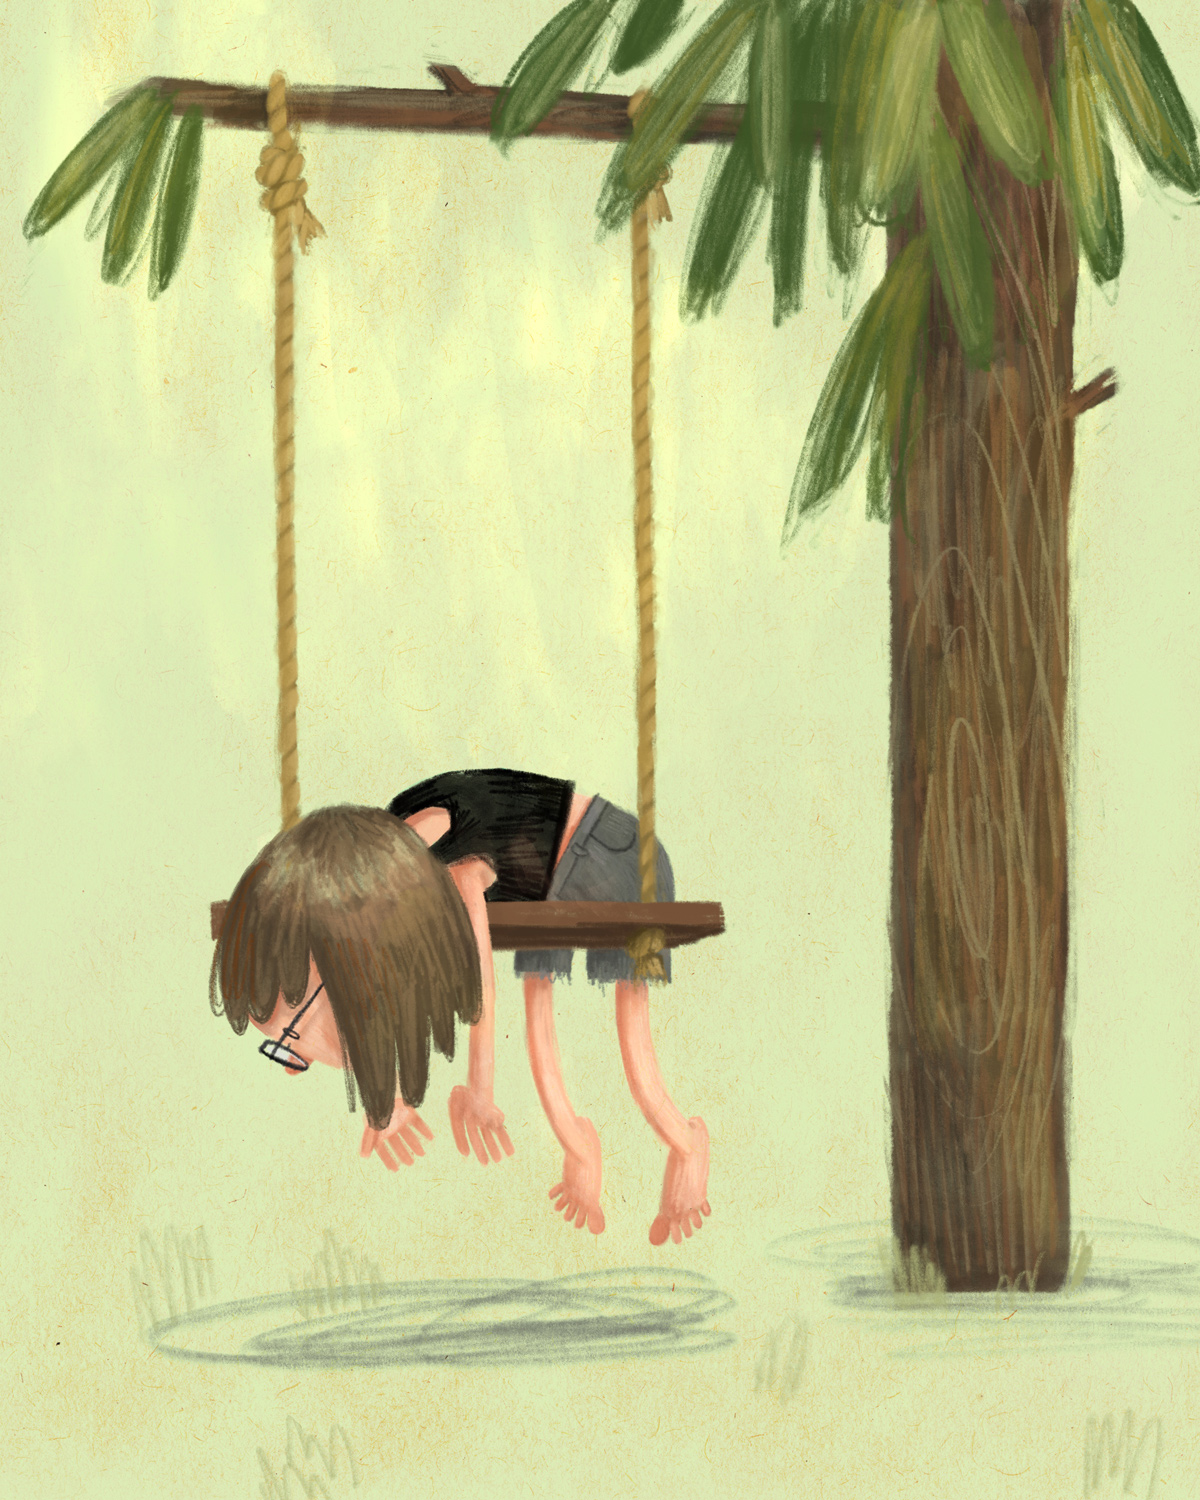 The Swing of Things  is part of an illustration series about finding creative rhythm, and what it feels like when one is in a creative slump.